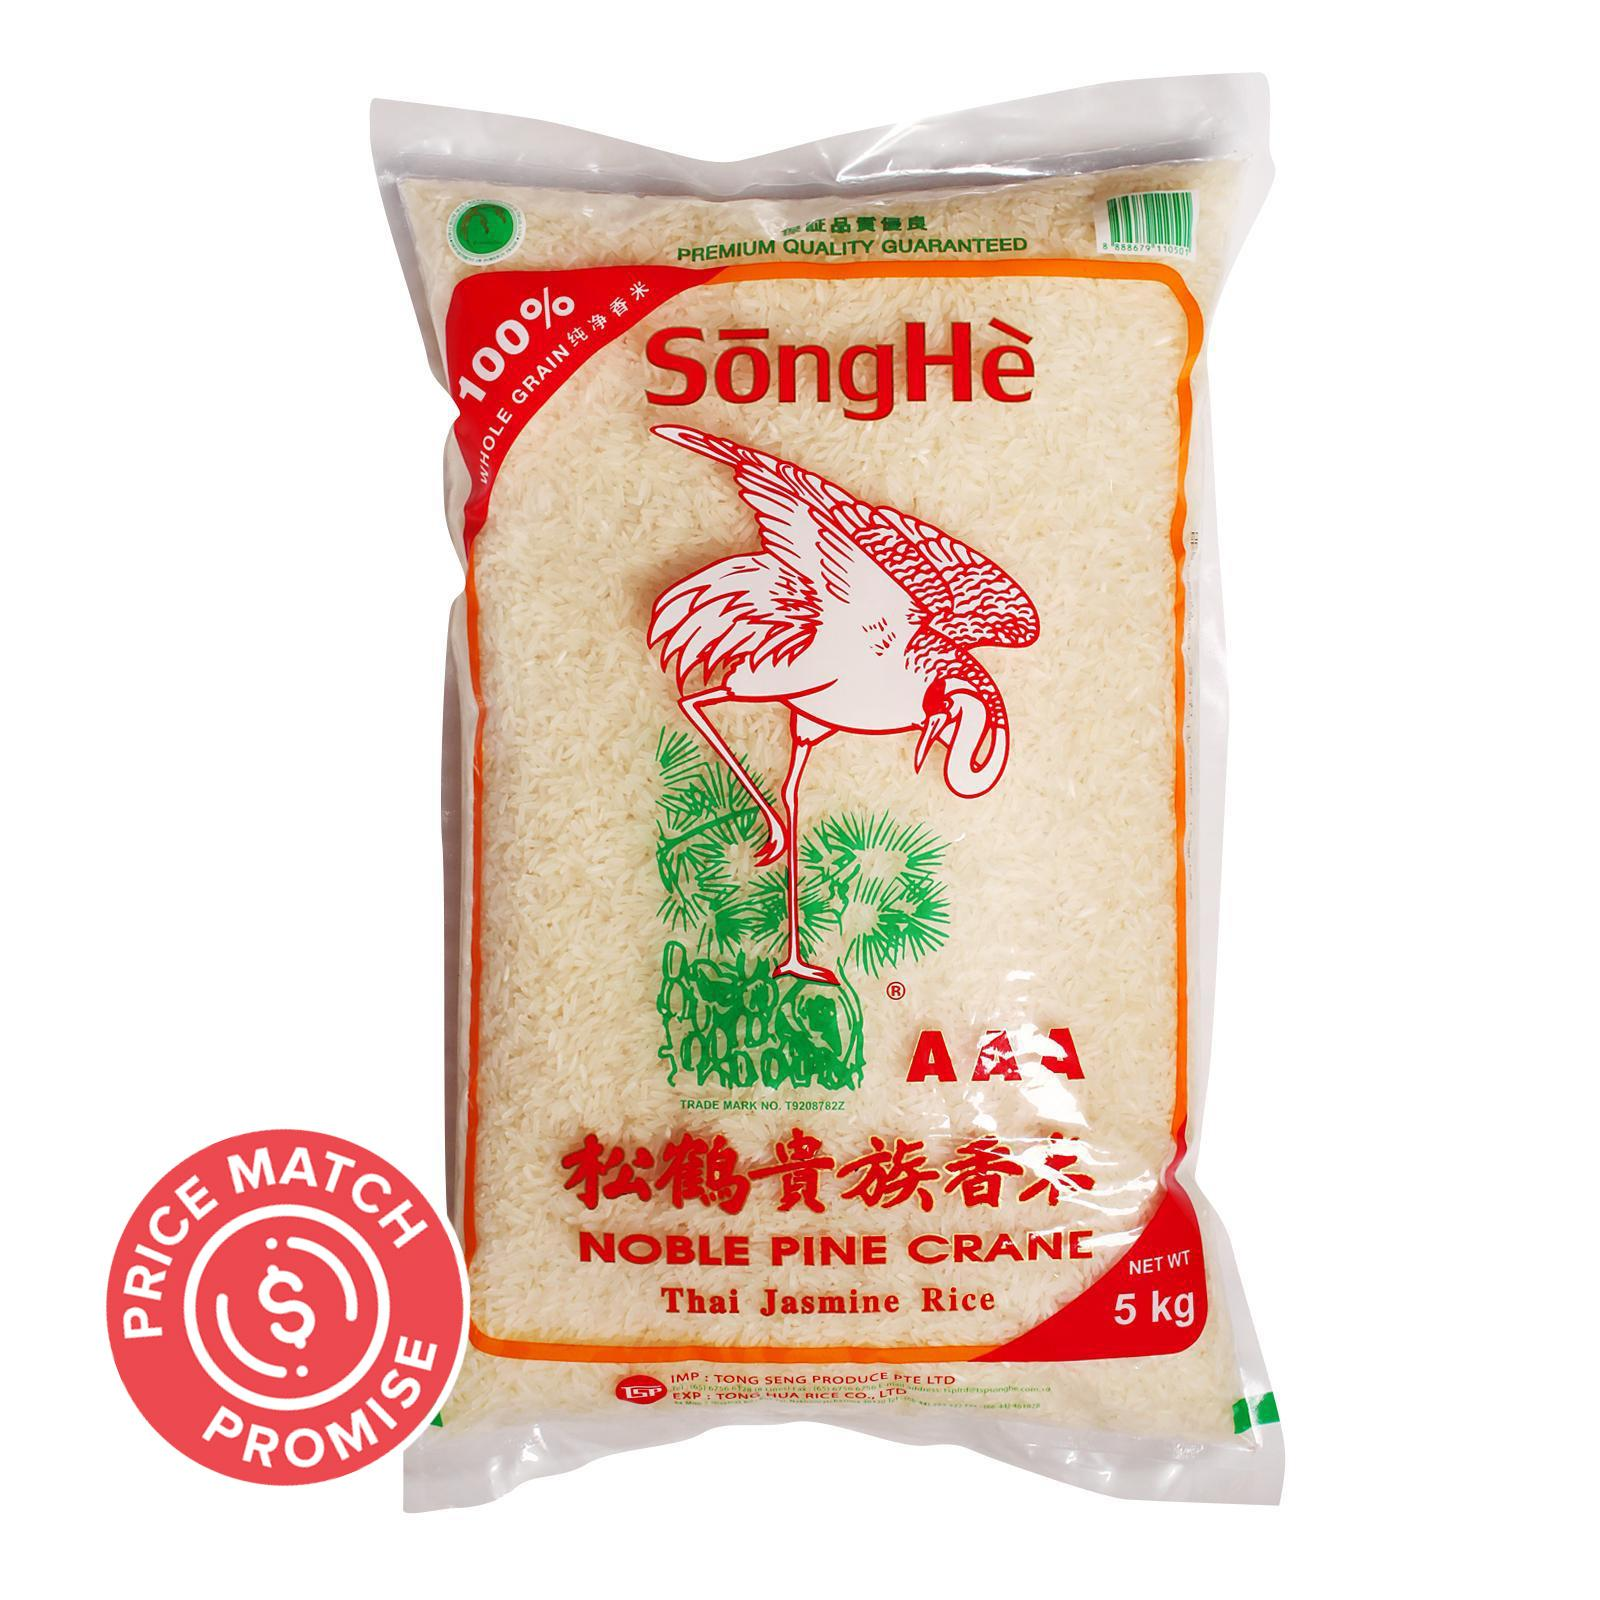 SongHe Whole Kernel Thai Hom Mali Rice